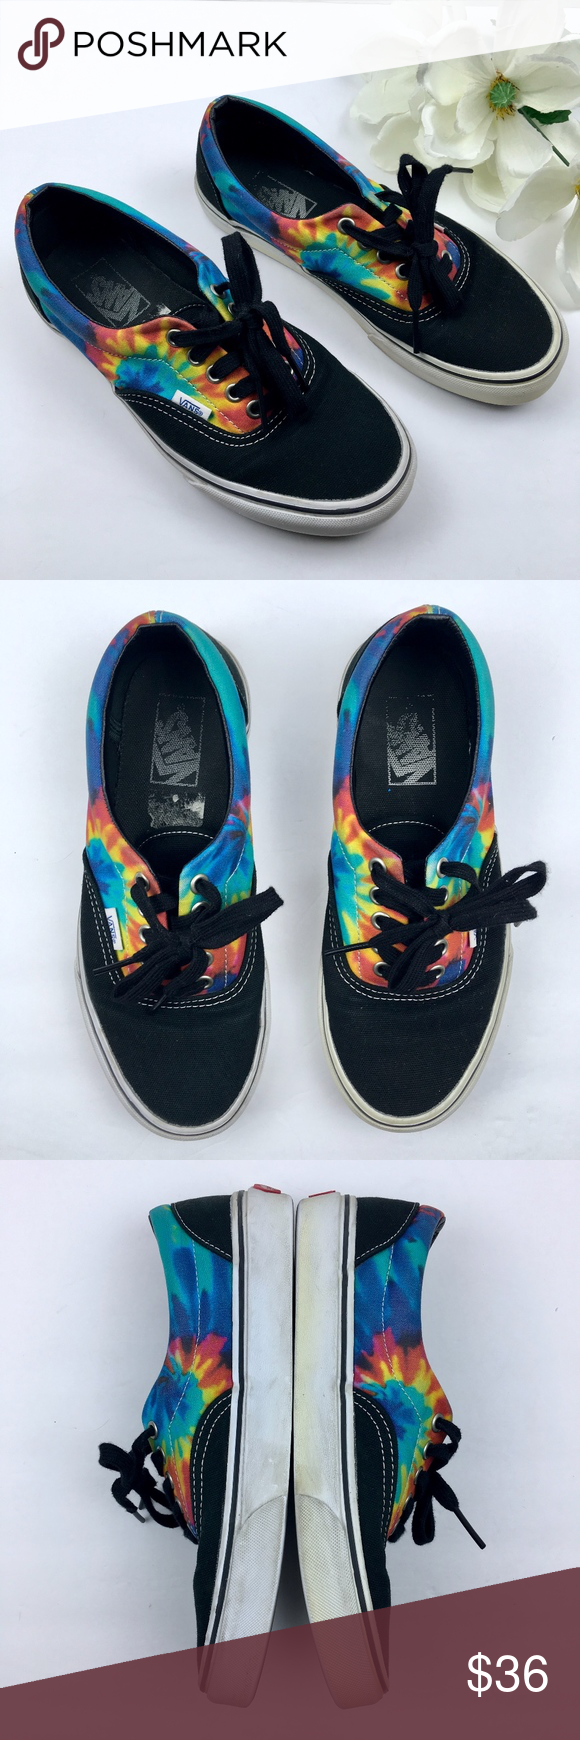 e2268558e7 VANS Black Tie Dye Lo Top Sneakers WMN 8 MEN 6.5 Unisex Vans black w ...